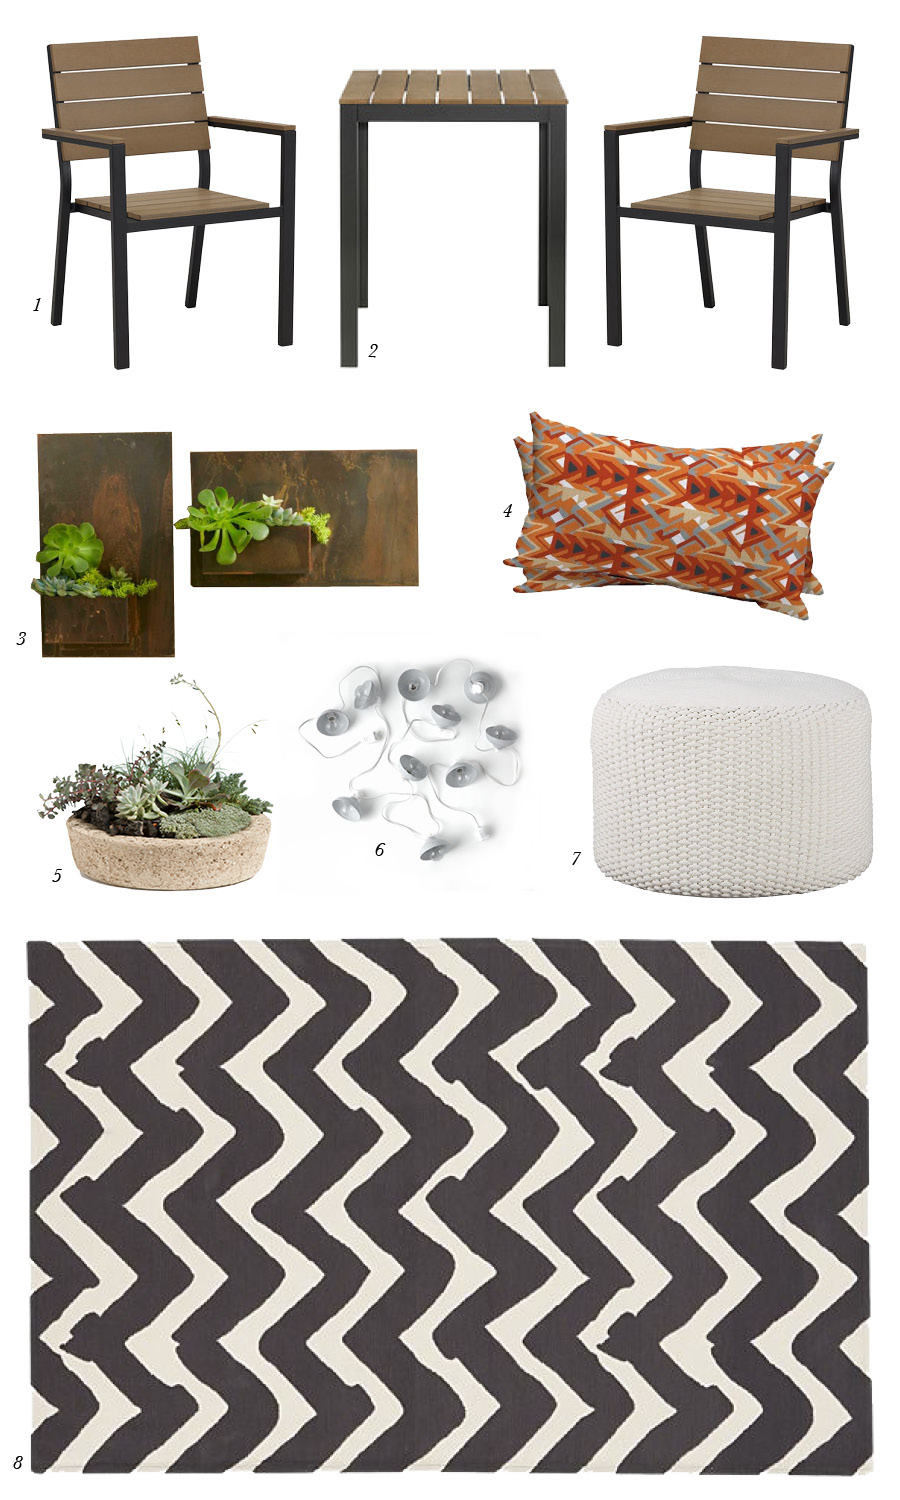 1. FALSTER Armchair from IKEA; 2. FALSTER Bistro Table from IKEA; 3. Metal Planter Wall Art from Vivaterra; 4. Tribal Triangle Orange Pillow Set from Target; 5. Low Profile Hypertufa Planter, No. 3 from Terrain; 6. Industrial String Lights from West Elm; 7. Criss Knit Indoor-Outdoor Pouf from CB2; 8. Chevron Outdoor Rug from Crate & Barrel